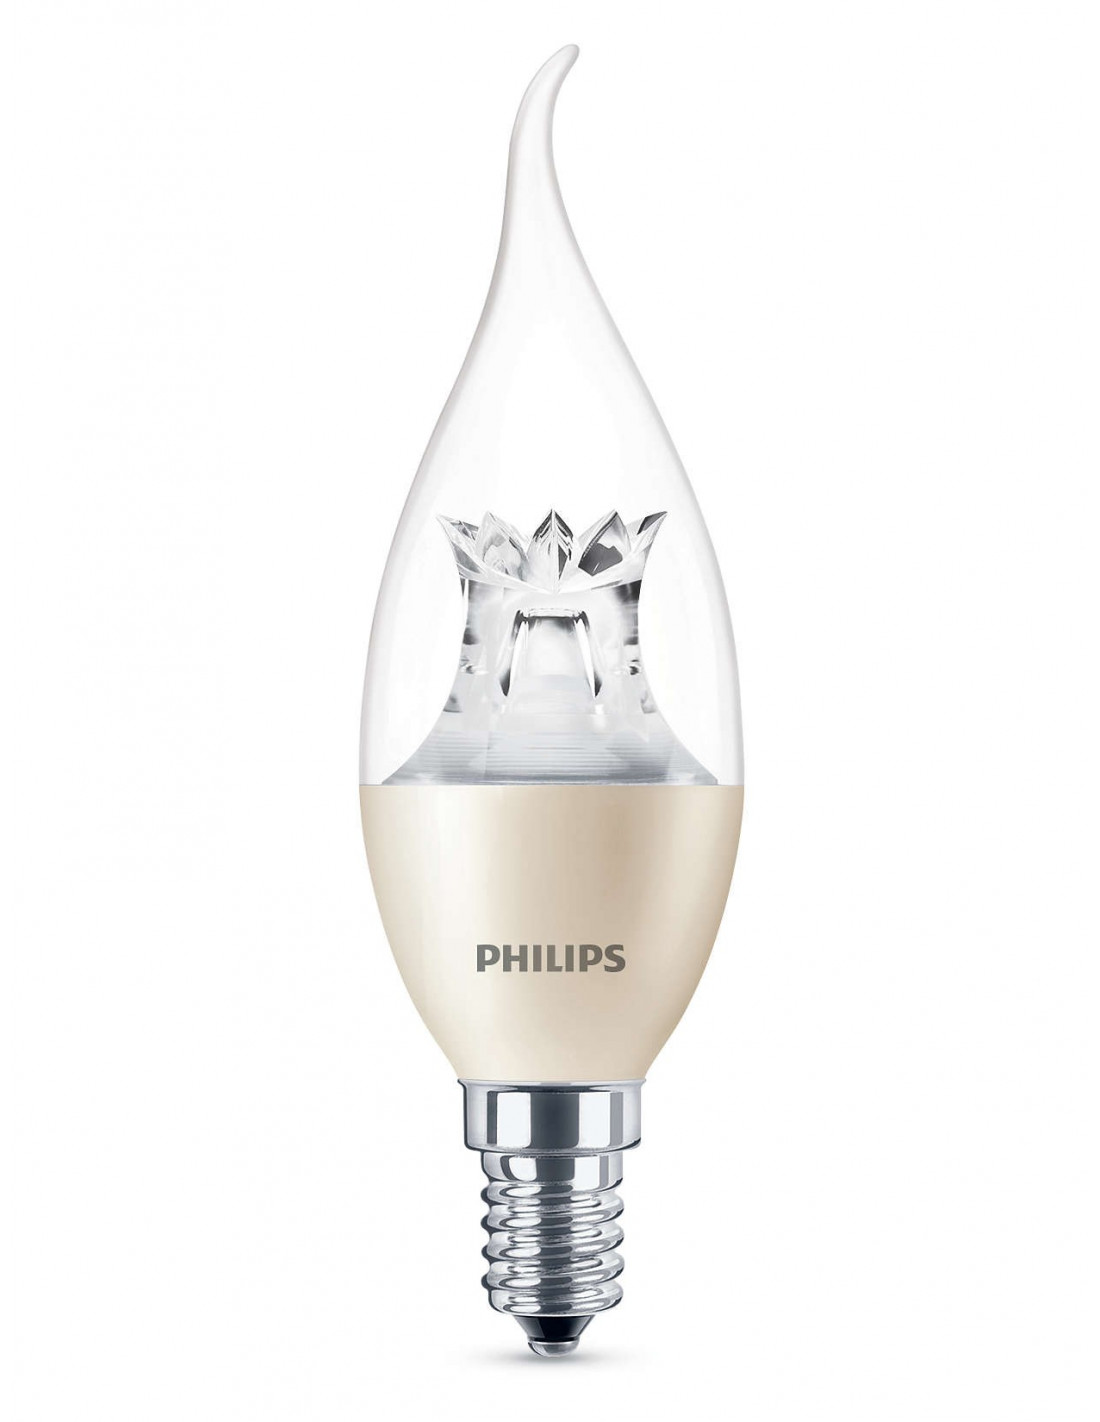 philips ampoule led flamme 4w 25w e14 lumi re chaleureuse intensit variable hyper brico. Black Bedroom Furniture Sets. Home Design Ideas